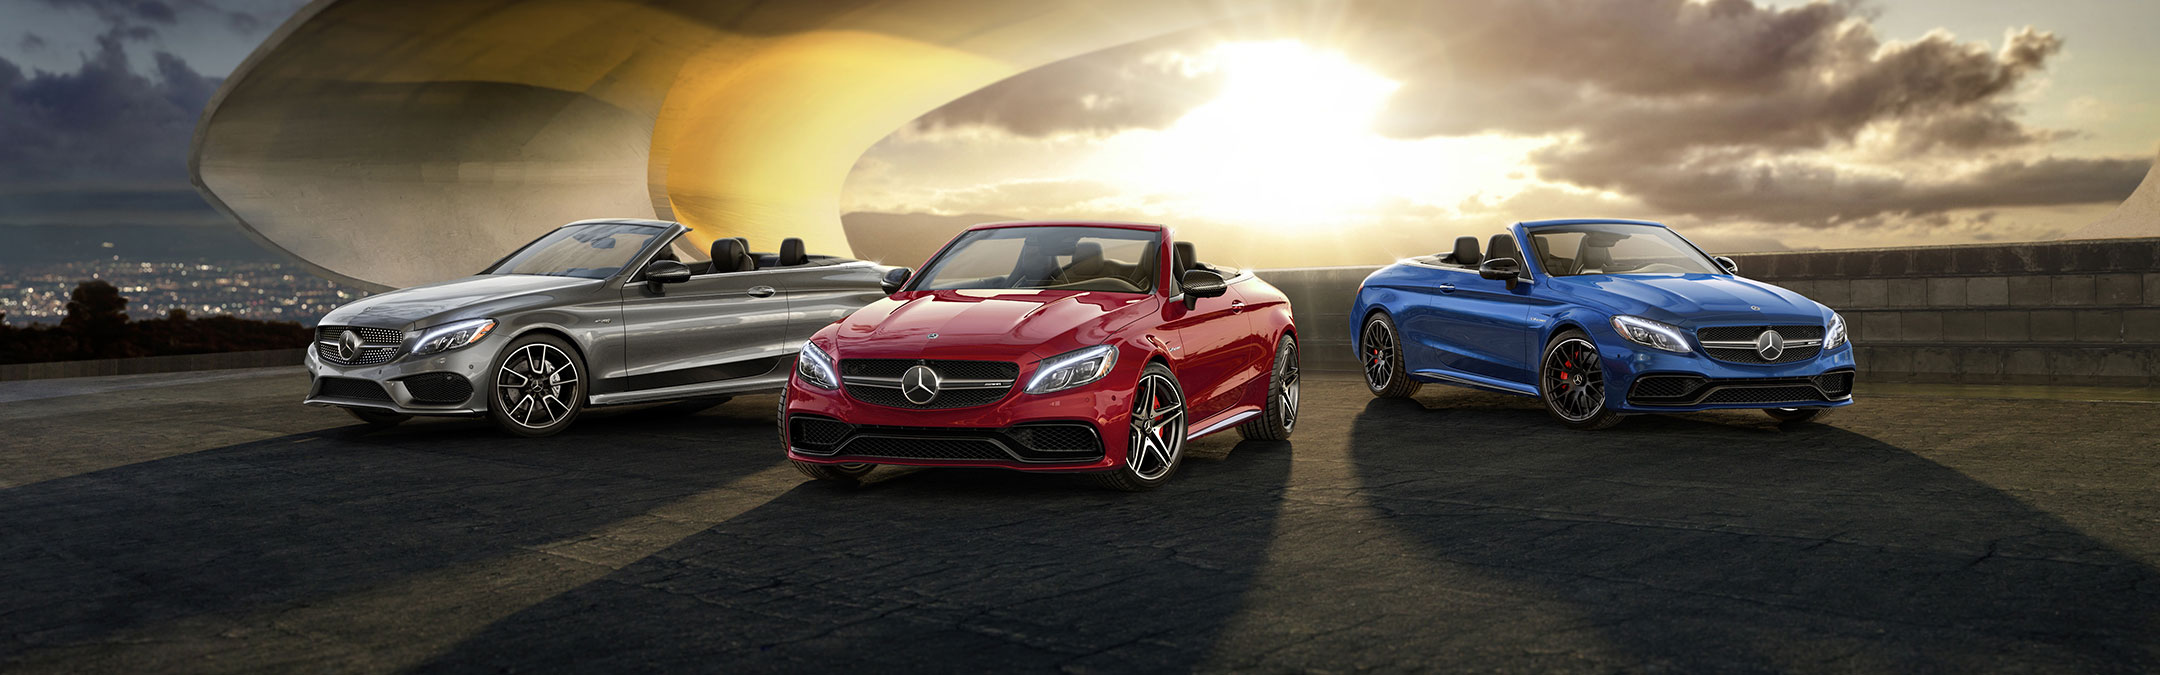 2018 Mercedes-AMG C-Class Cabriolet